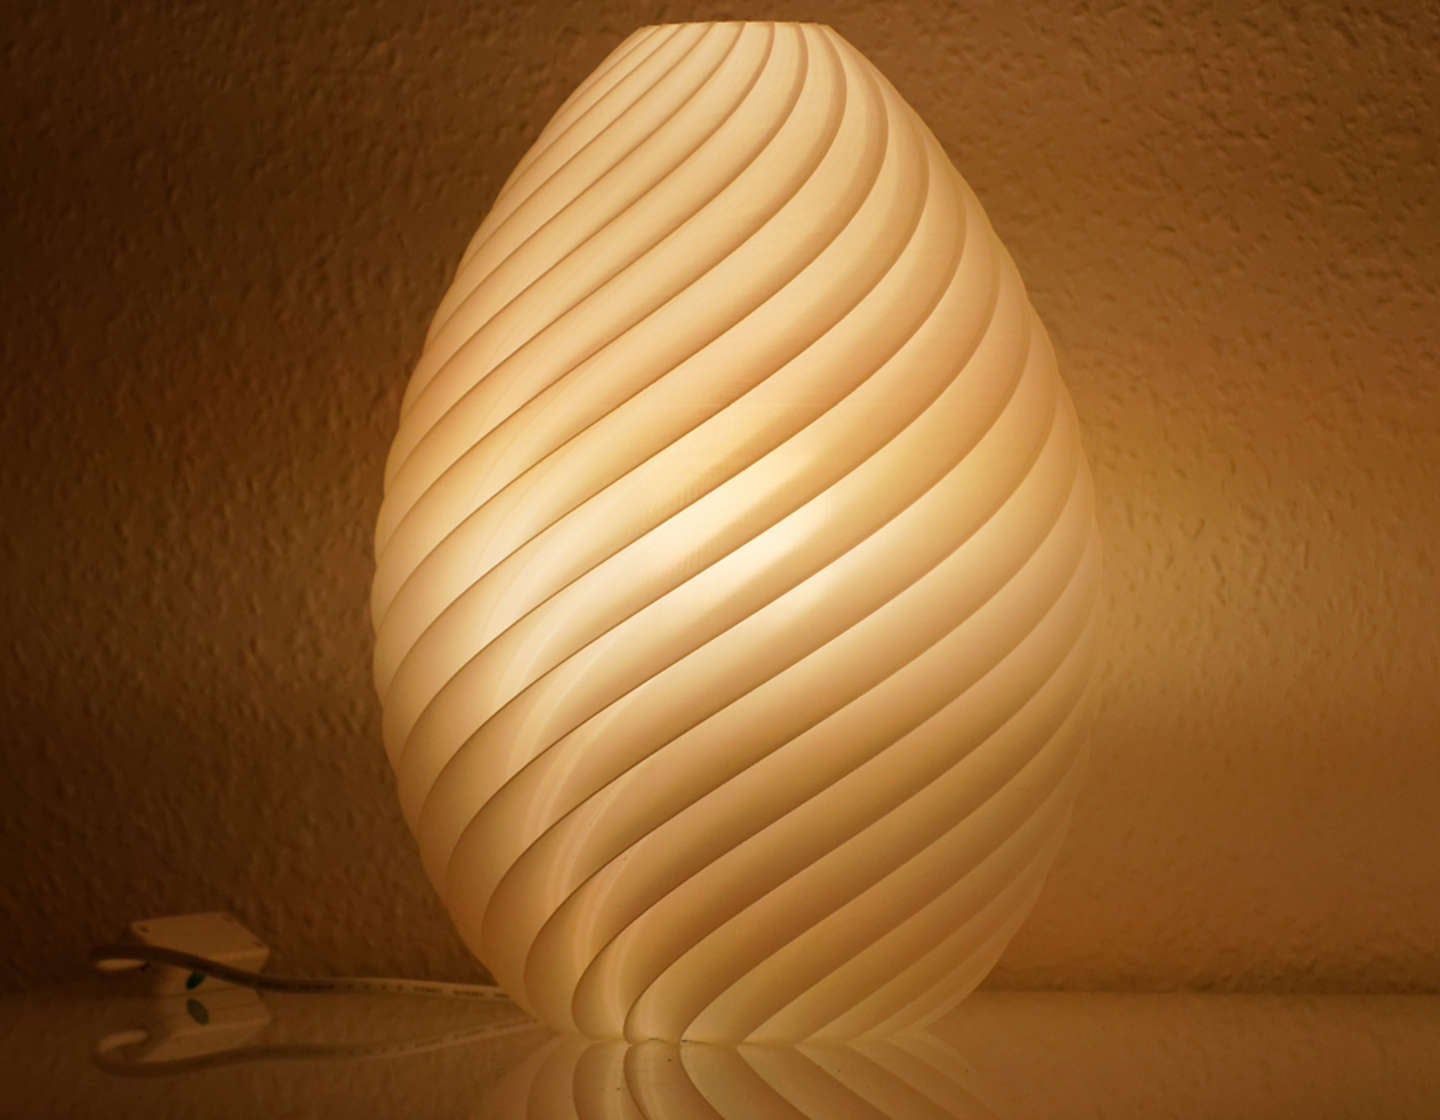 3D printed table lamp philips hue